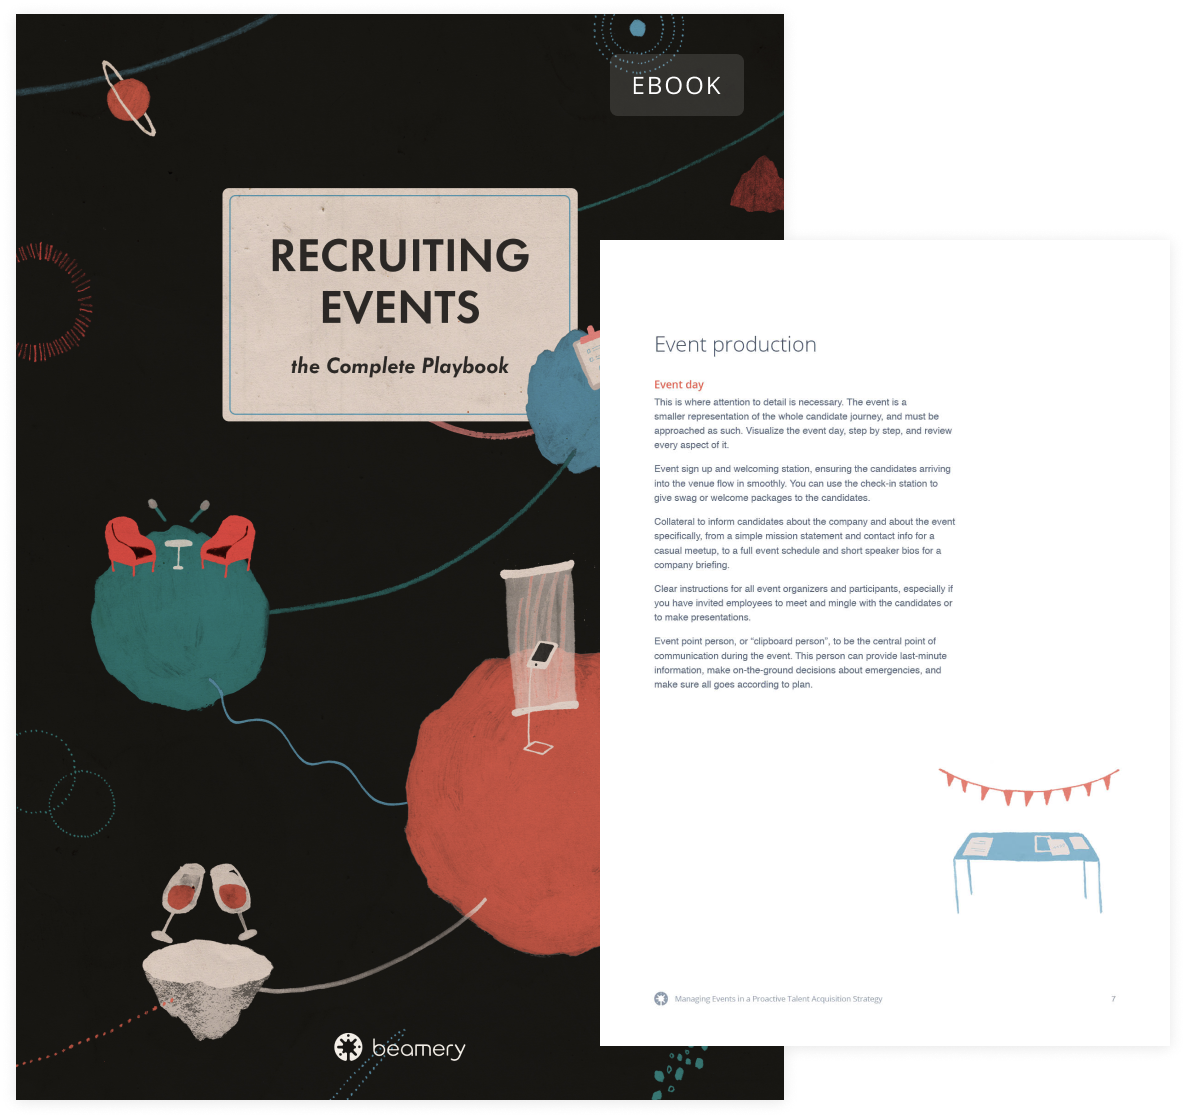 Recruiting Events – The Complete Playbook image